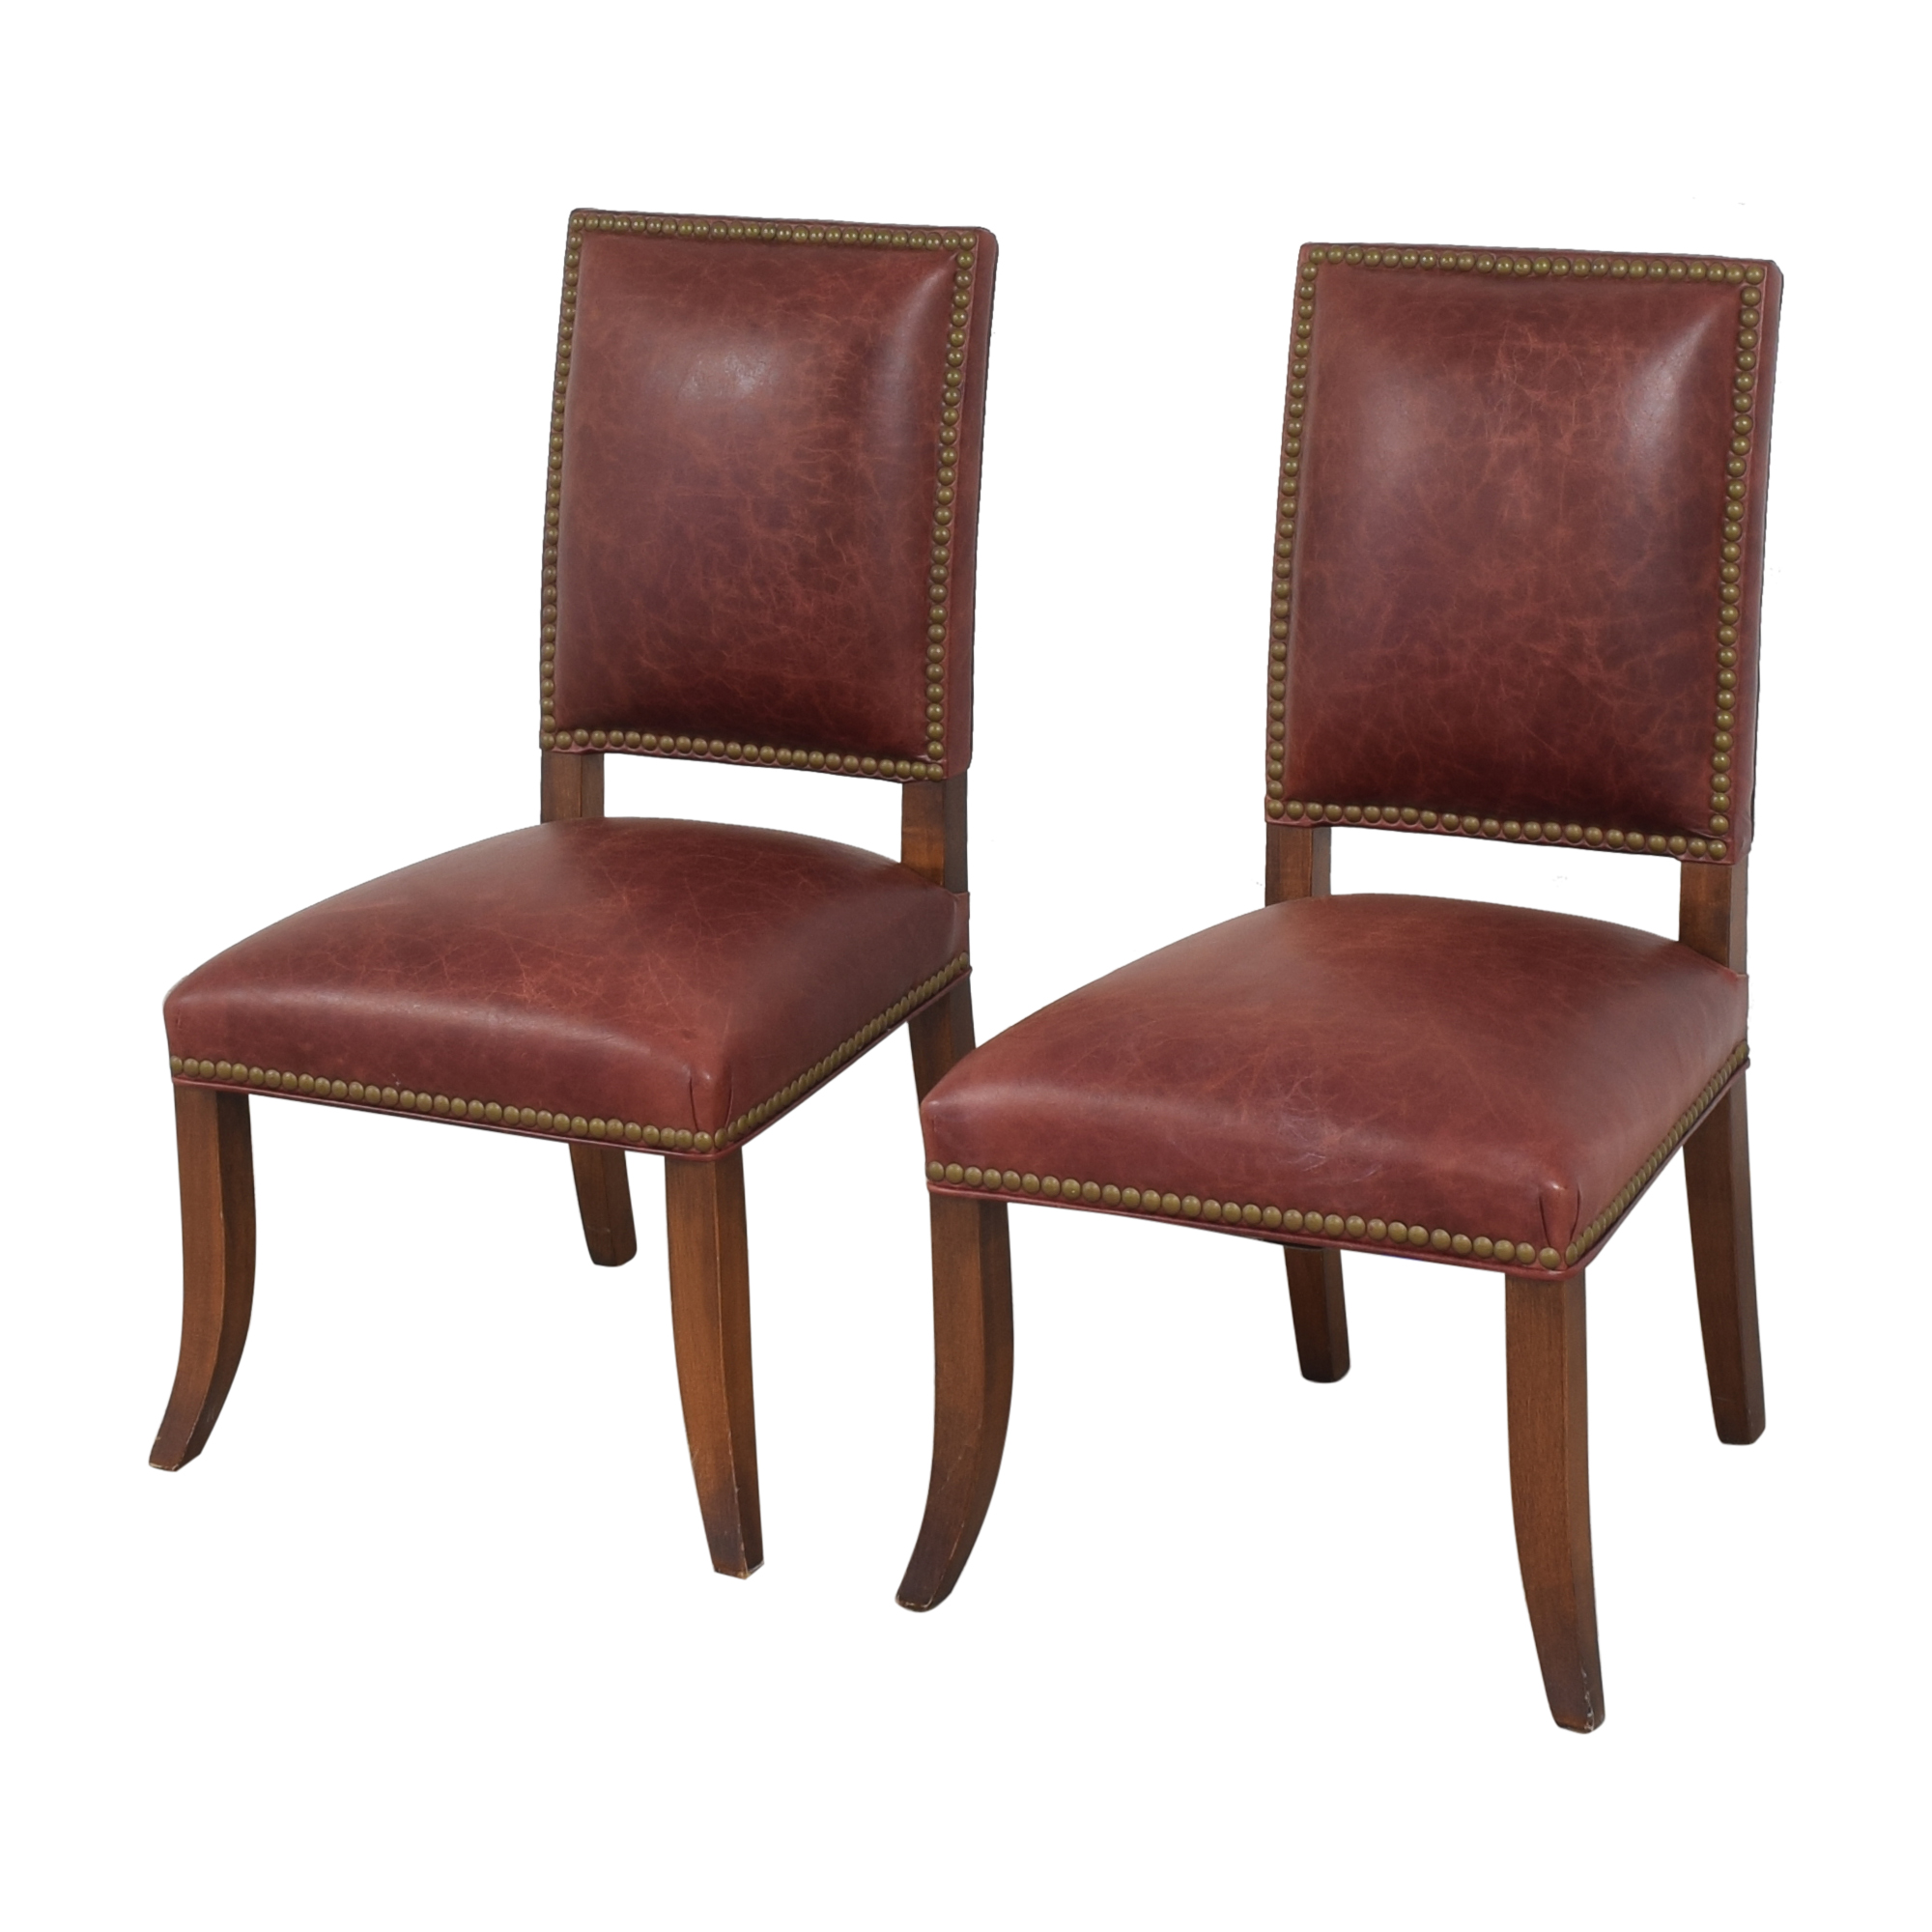 Ethan Allen Ethan Allen Nailhead Dining Side Chairs used